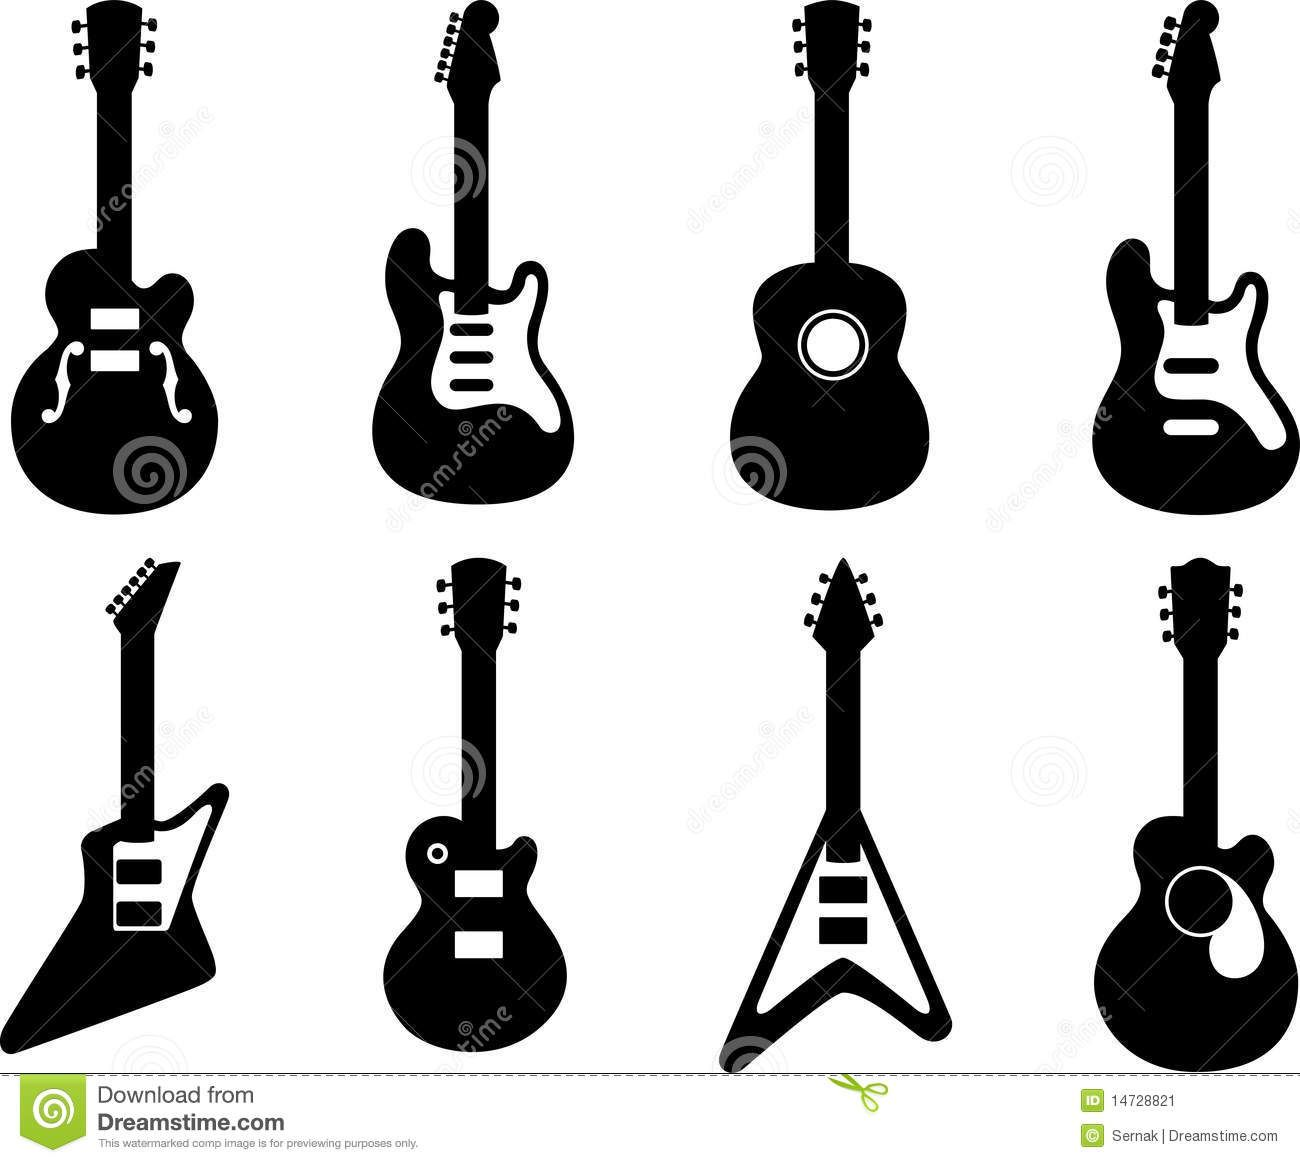 Illustration About Vector Illustration Of 8 Guitar Silhouette To See The Other Guitar Sets Please Check My Portf Guitar Illustration Silhouette Vector Guitar